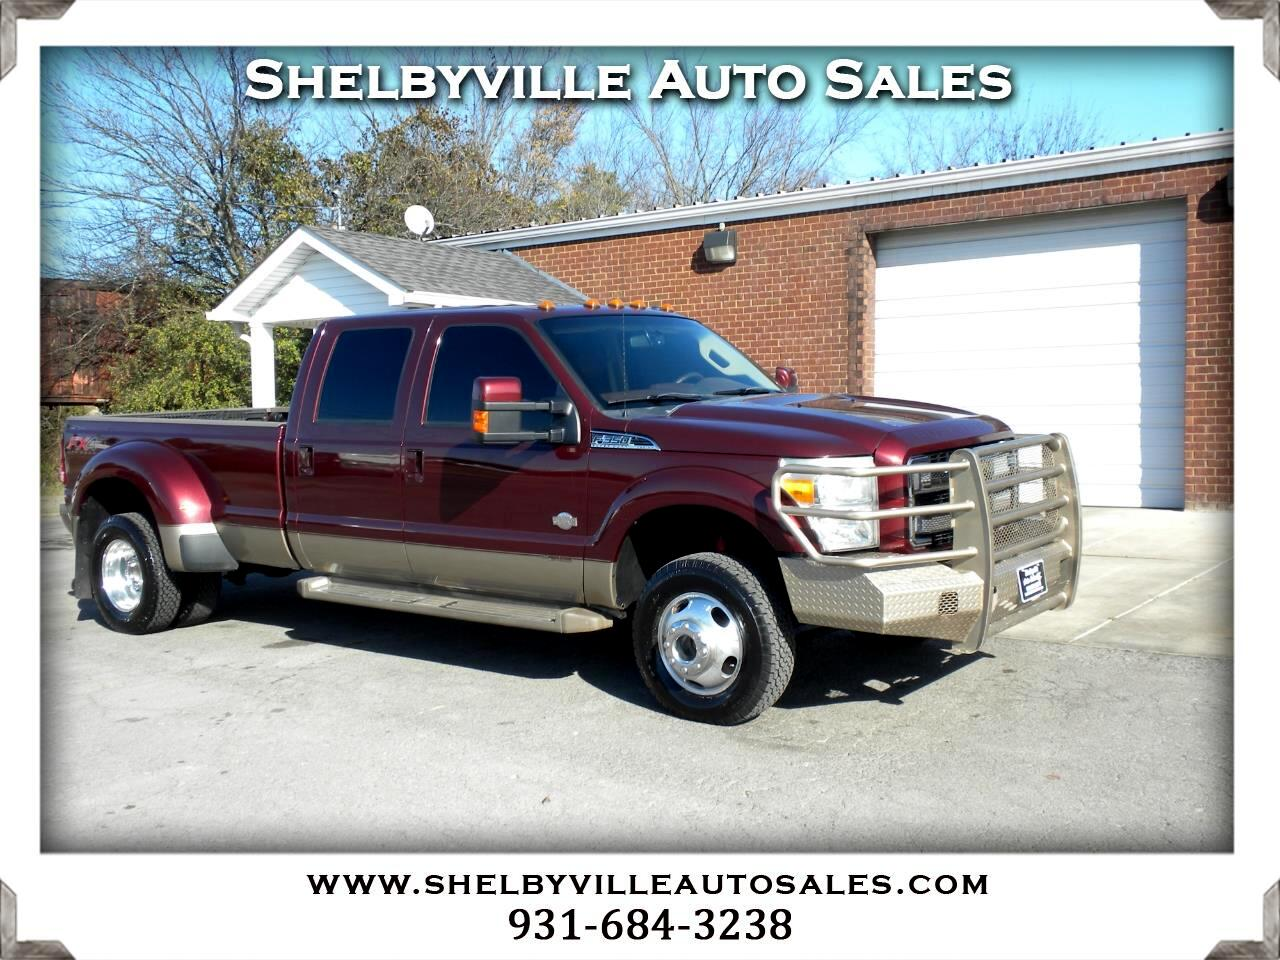 2013 Ford Super Duty F-350 DRW 4X4 Crew Cab King Ranch